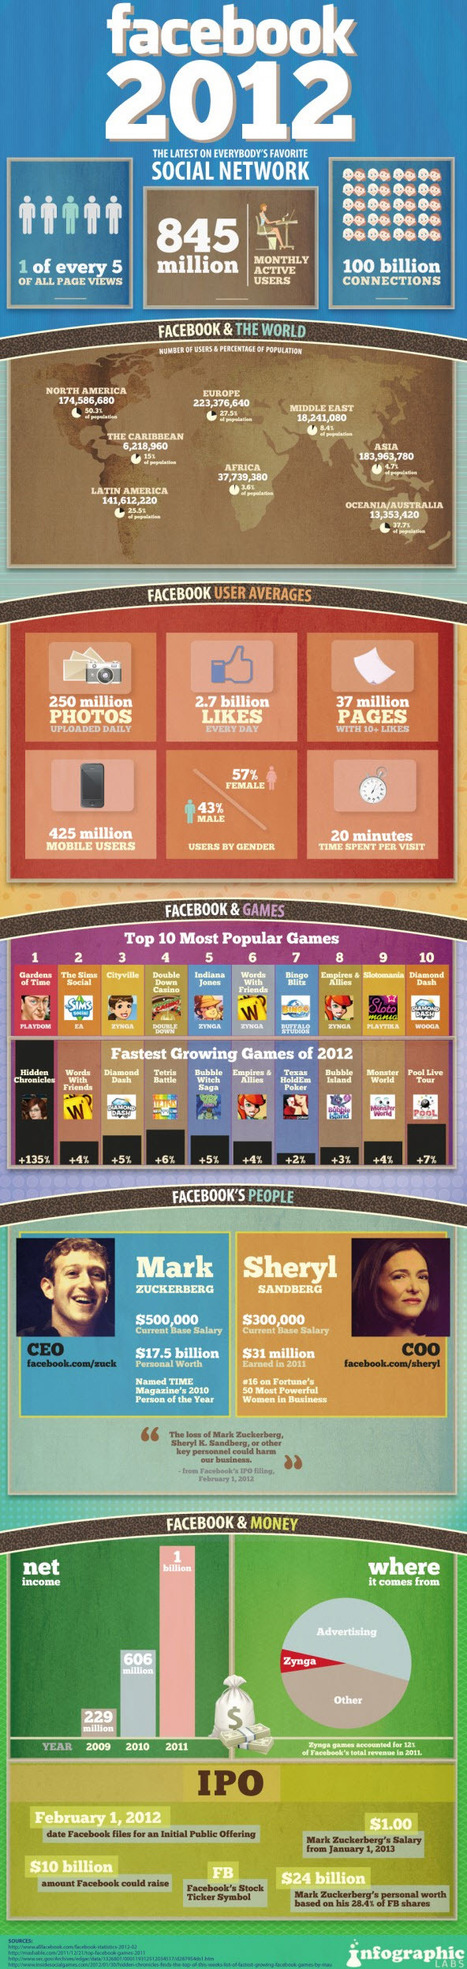 48 Significant Social Media Facts, Figures and Statistics - Plus 7 Infographics | Social media statistics 2013-2014 | Scoop.it